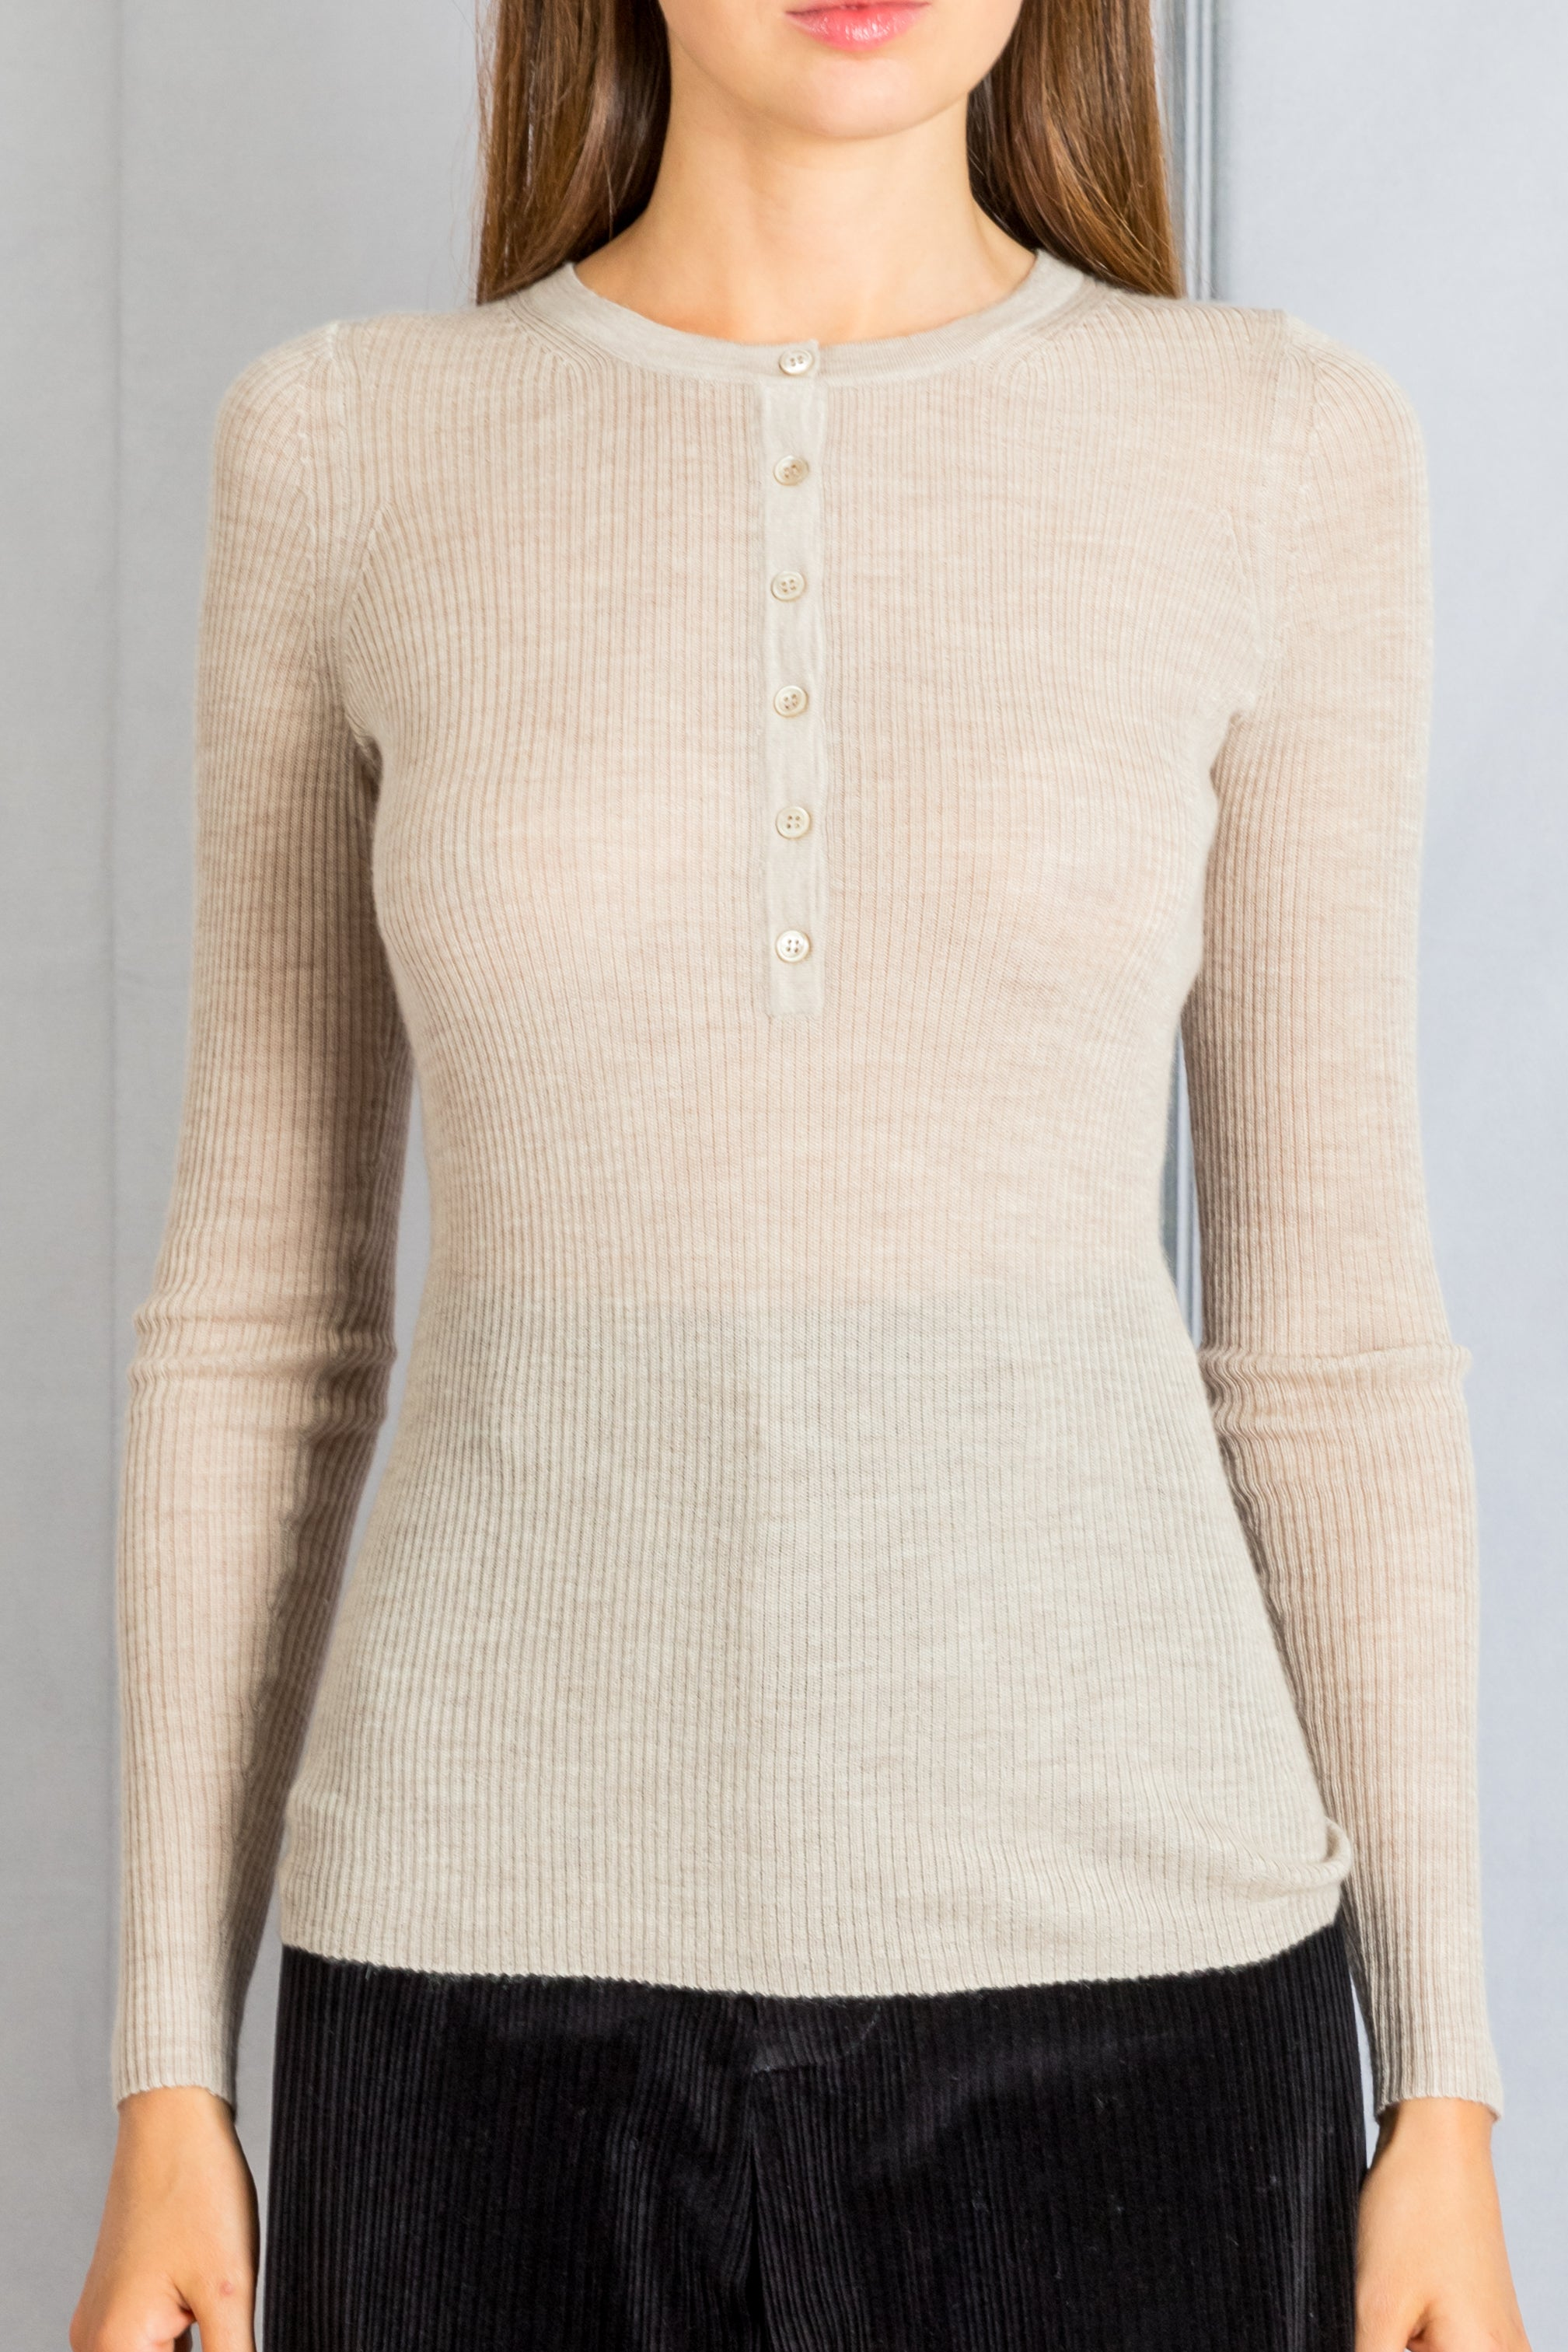 Long Sleeve Henley Knit Tee - Oatmeal